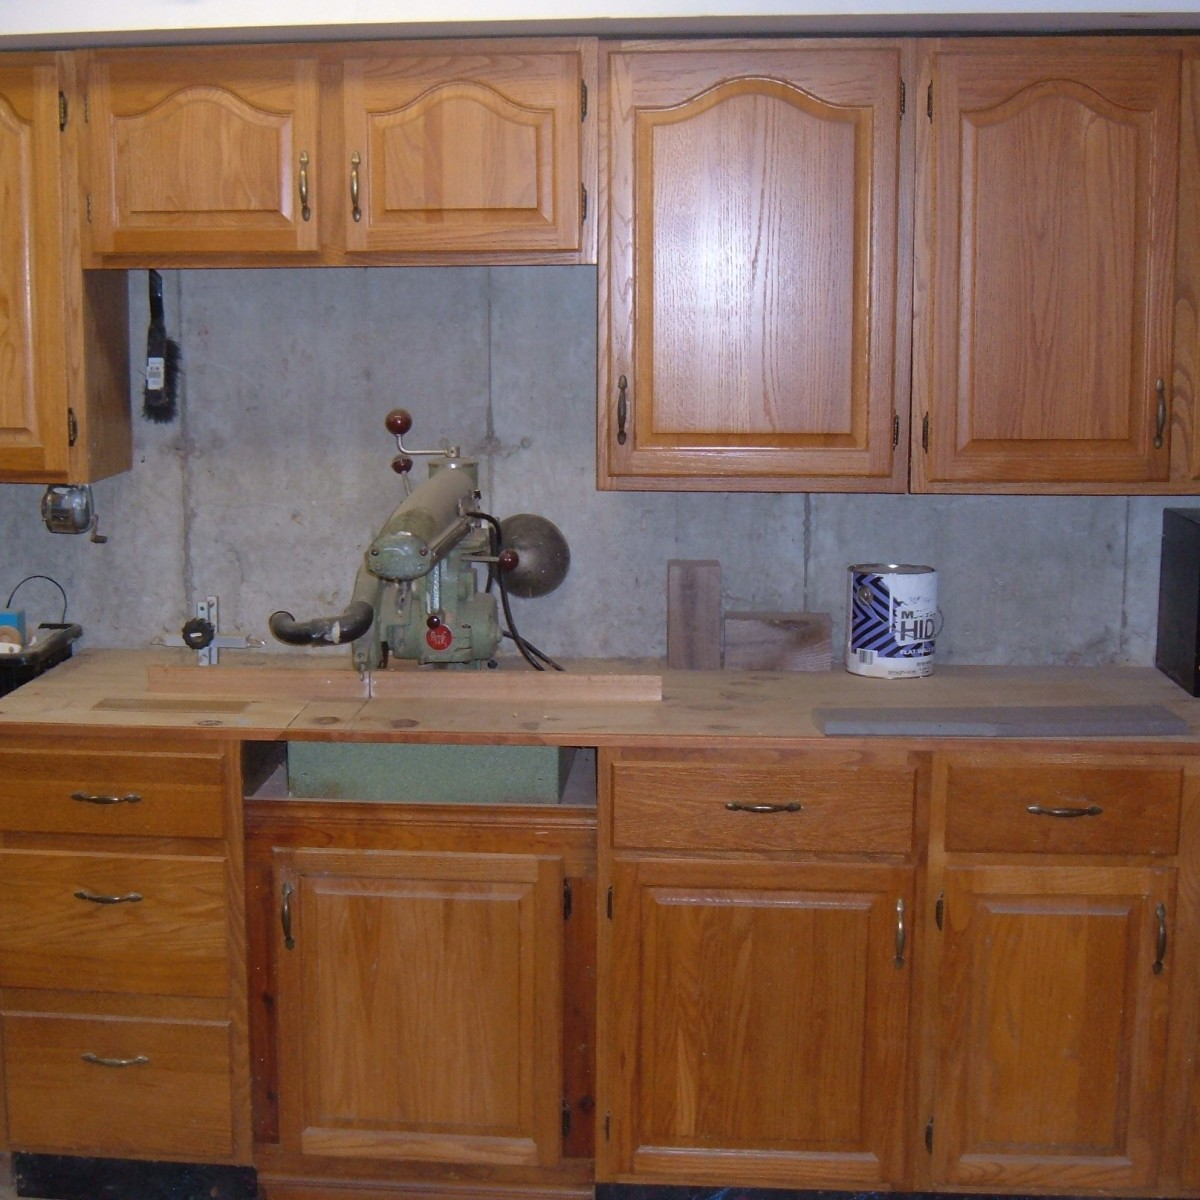 My Woodshop Storage Ideas: Recycling Kitchen Cabinets Into Garage Storage Units